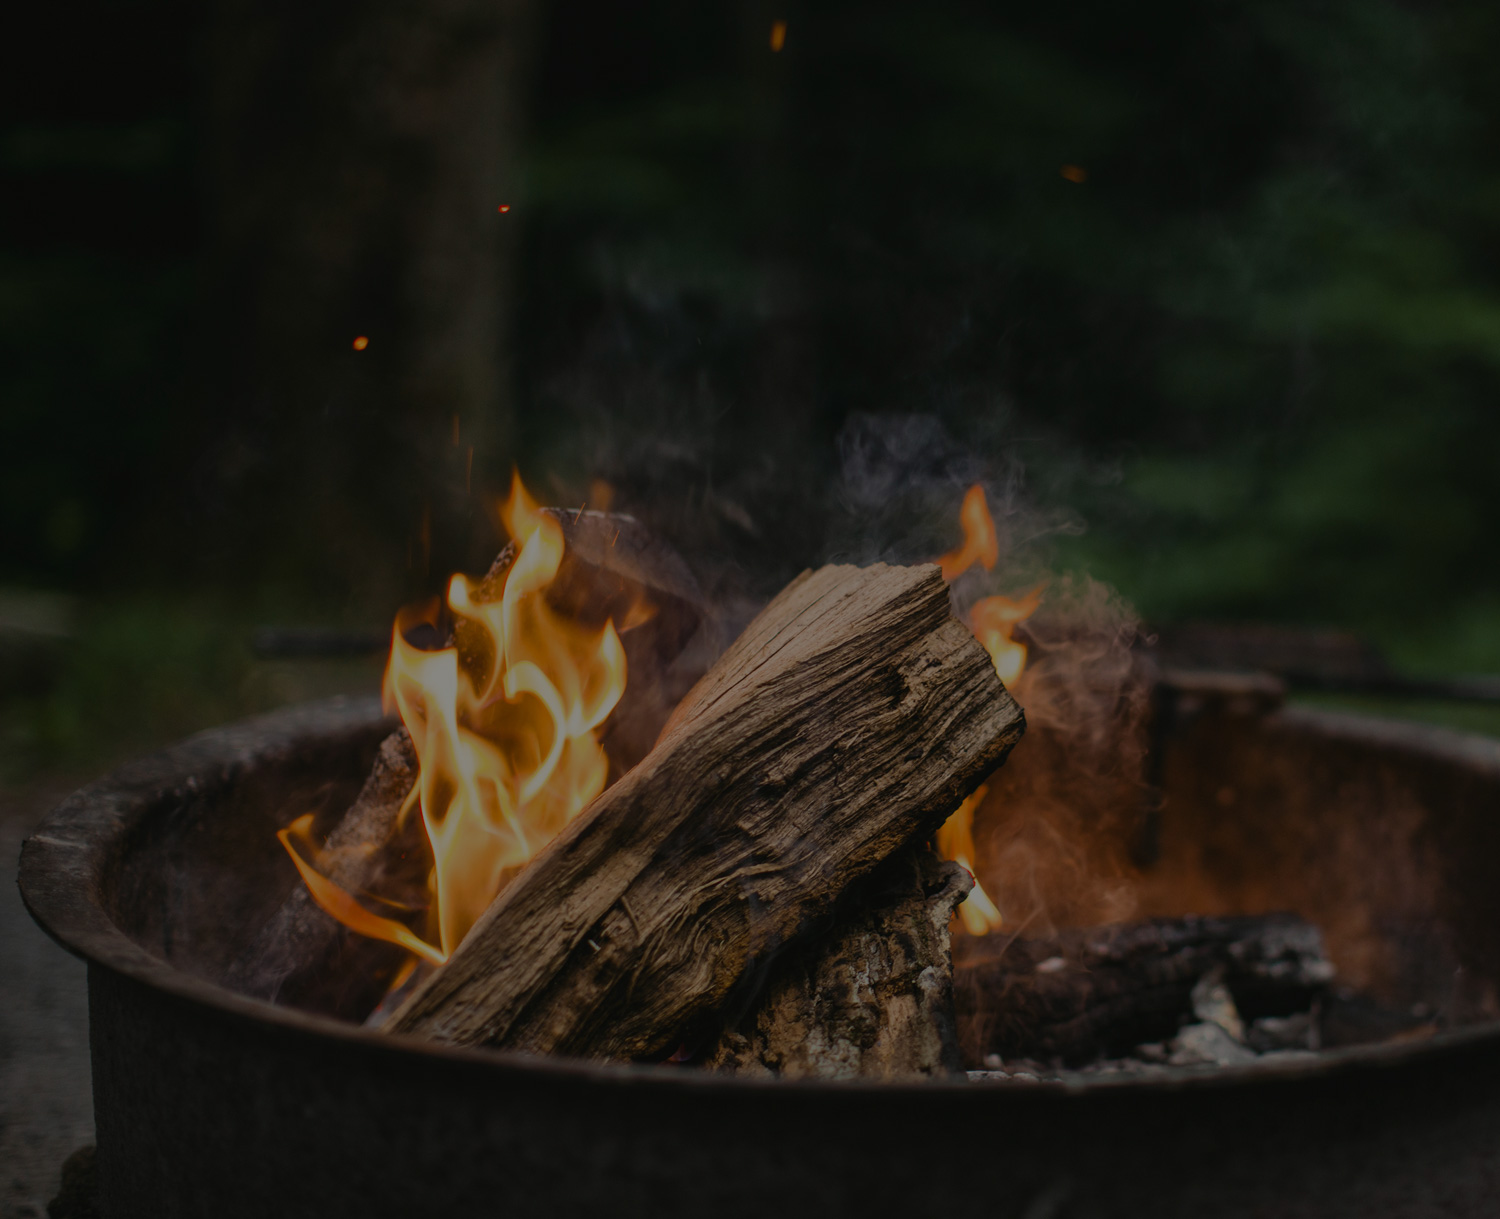 Campfire Mastermind - Get fired up feedback from other entrepreneurs and exchange breakthrough discussions and insights to support your vision and new business direction. We encourage fun and open collaborations.